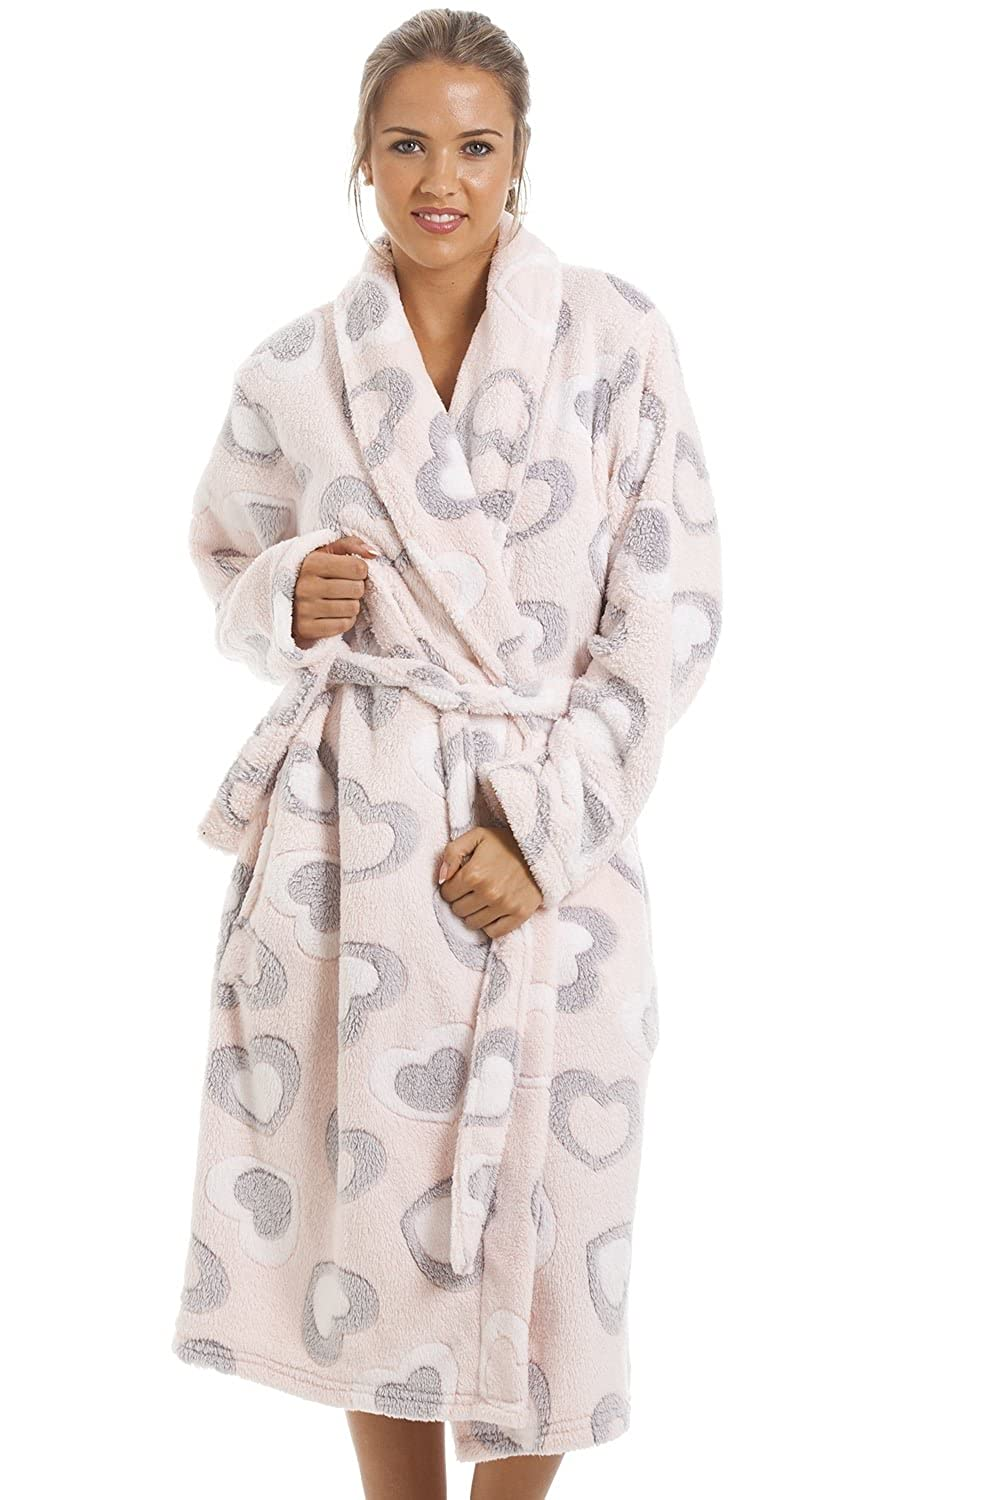 Camille Womens Ladies Grey And White Heart Print Supersoft Fleece Light Pink Bathrobe